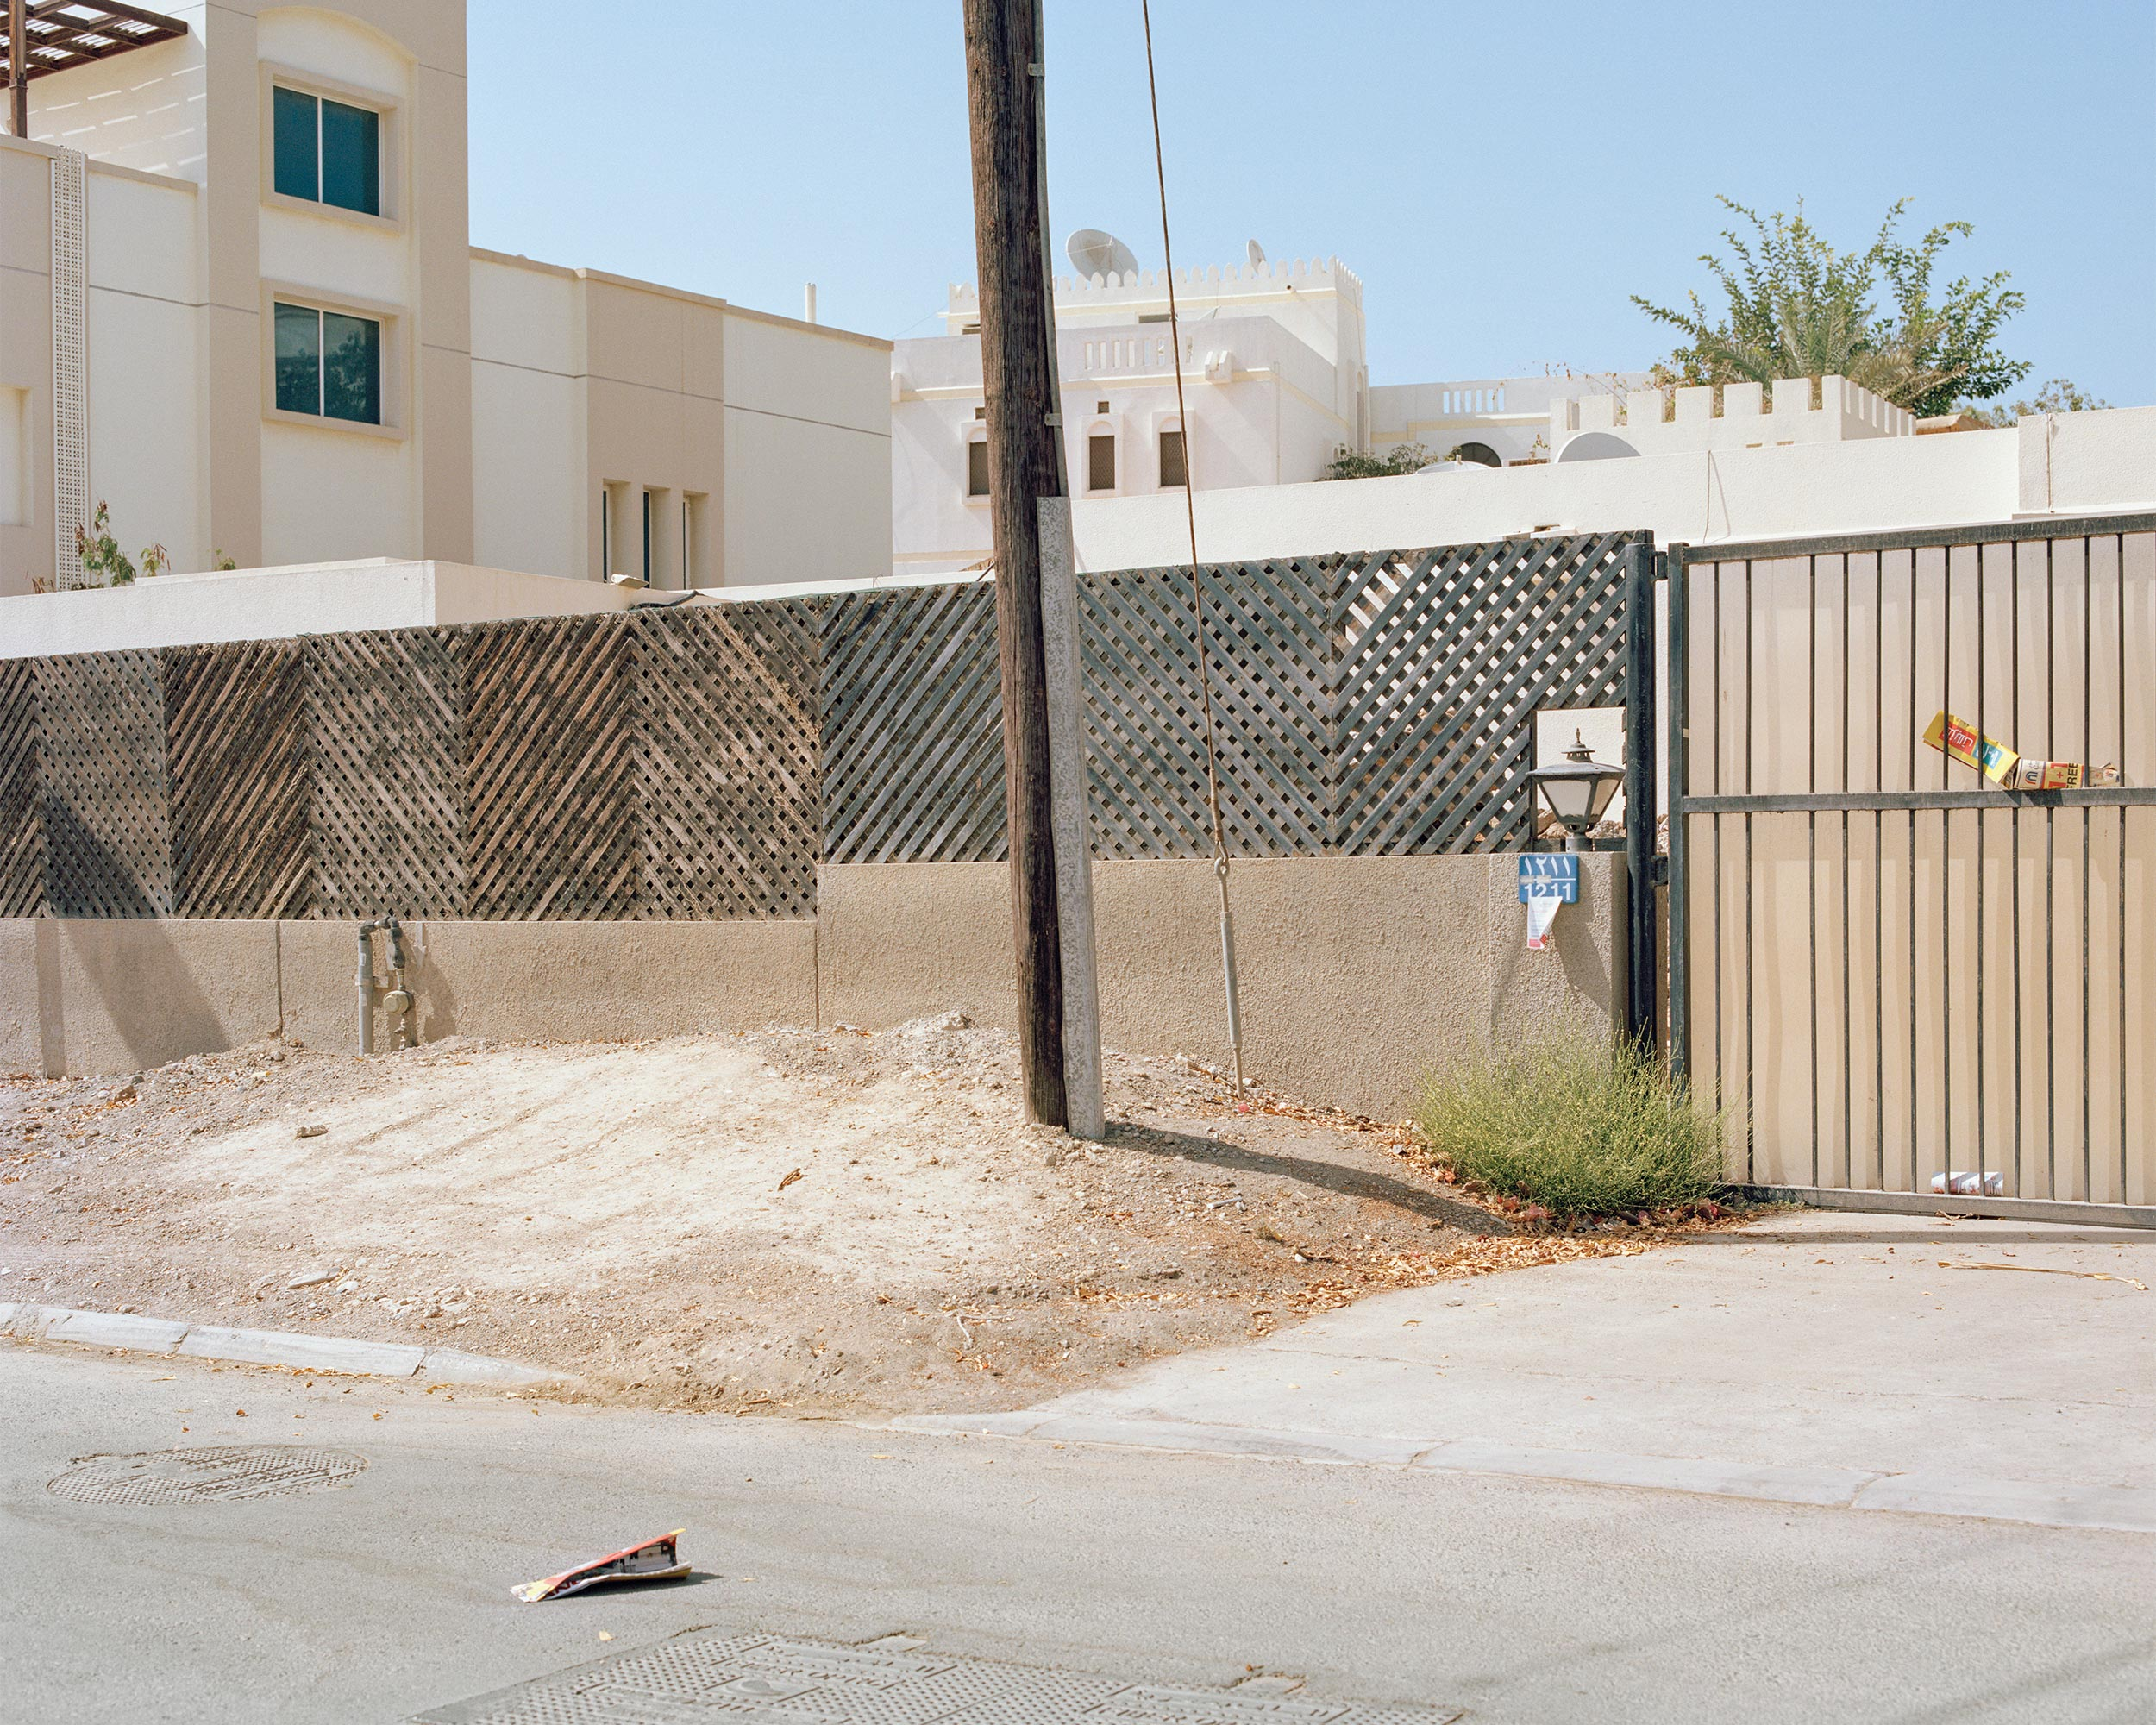 photograph of urban landscape from series XO